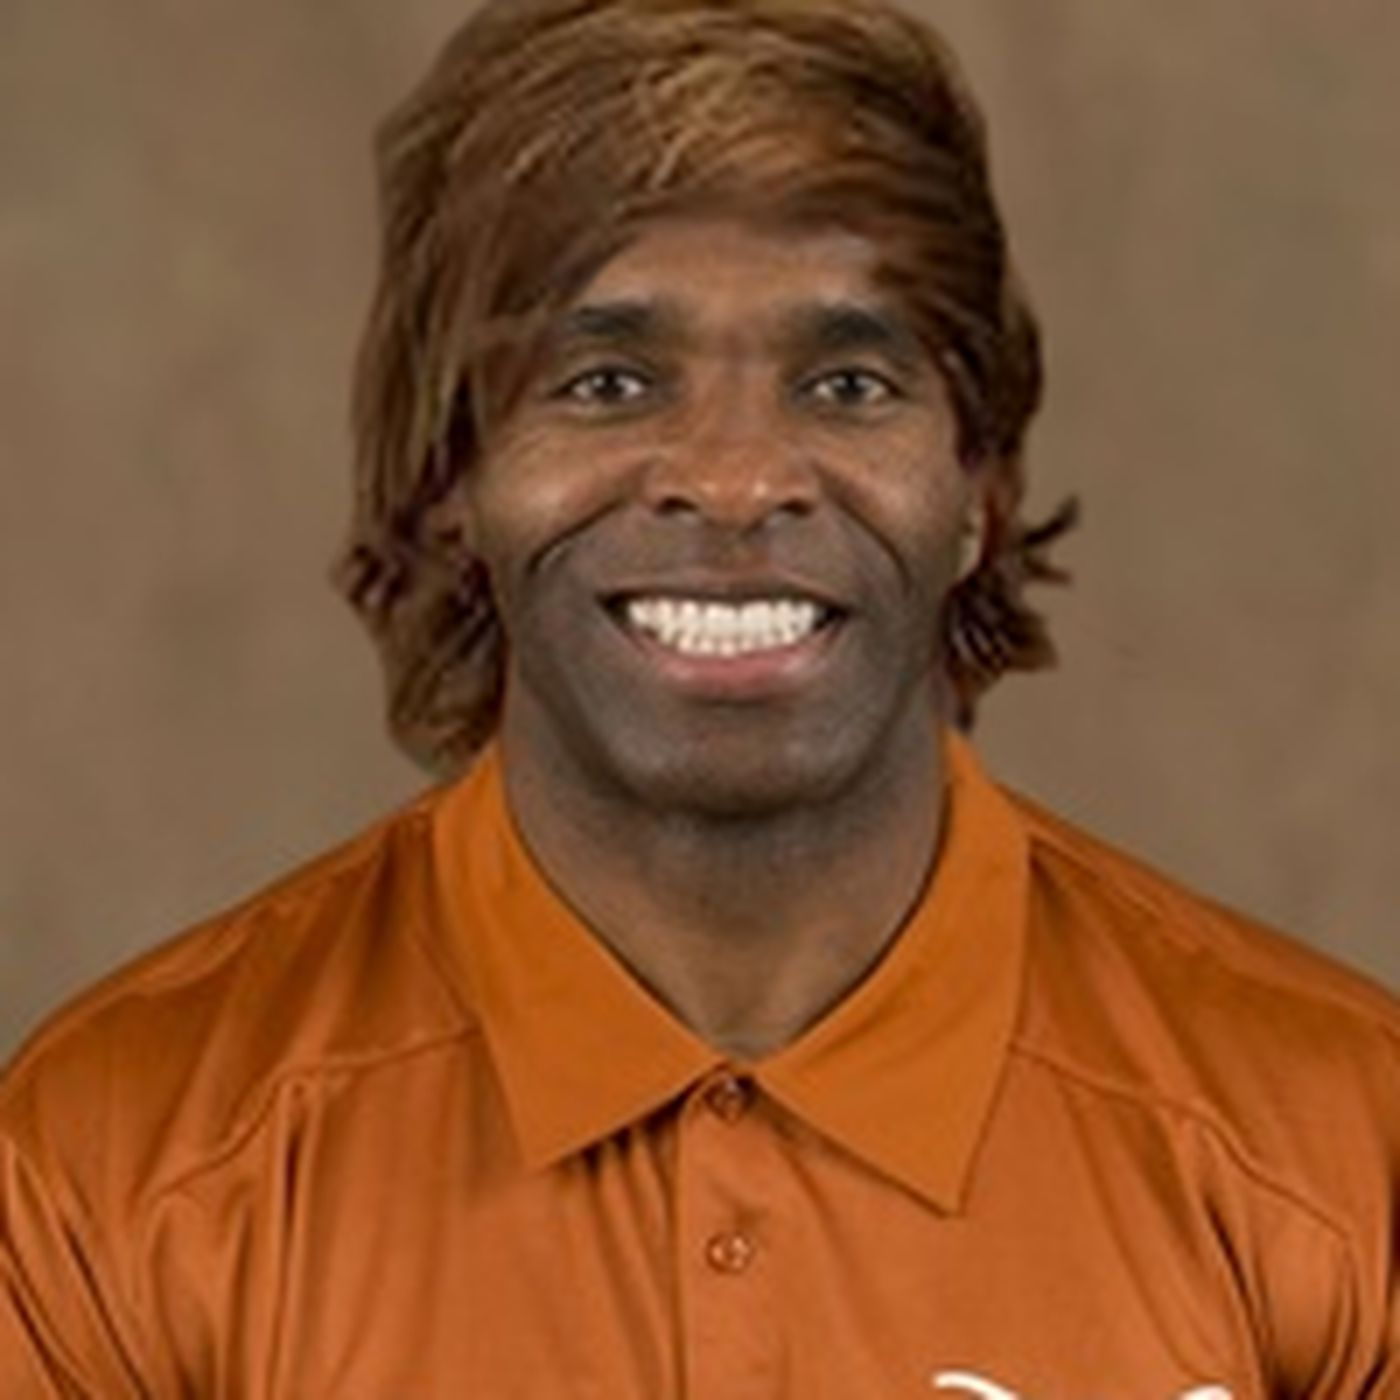 Nick Roses Supreme Haircut Unifies The Longhorns Good Bull Hunting